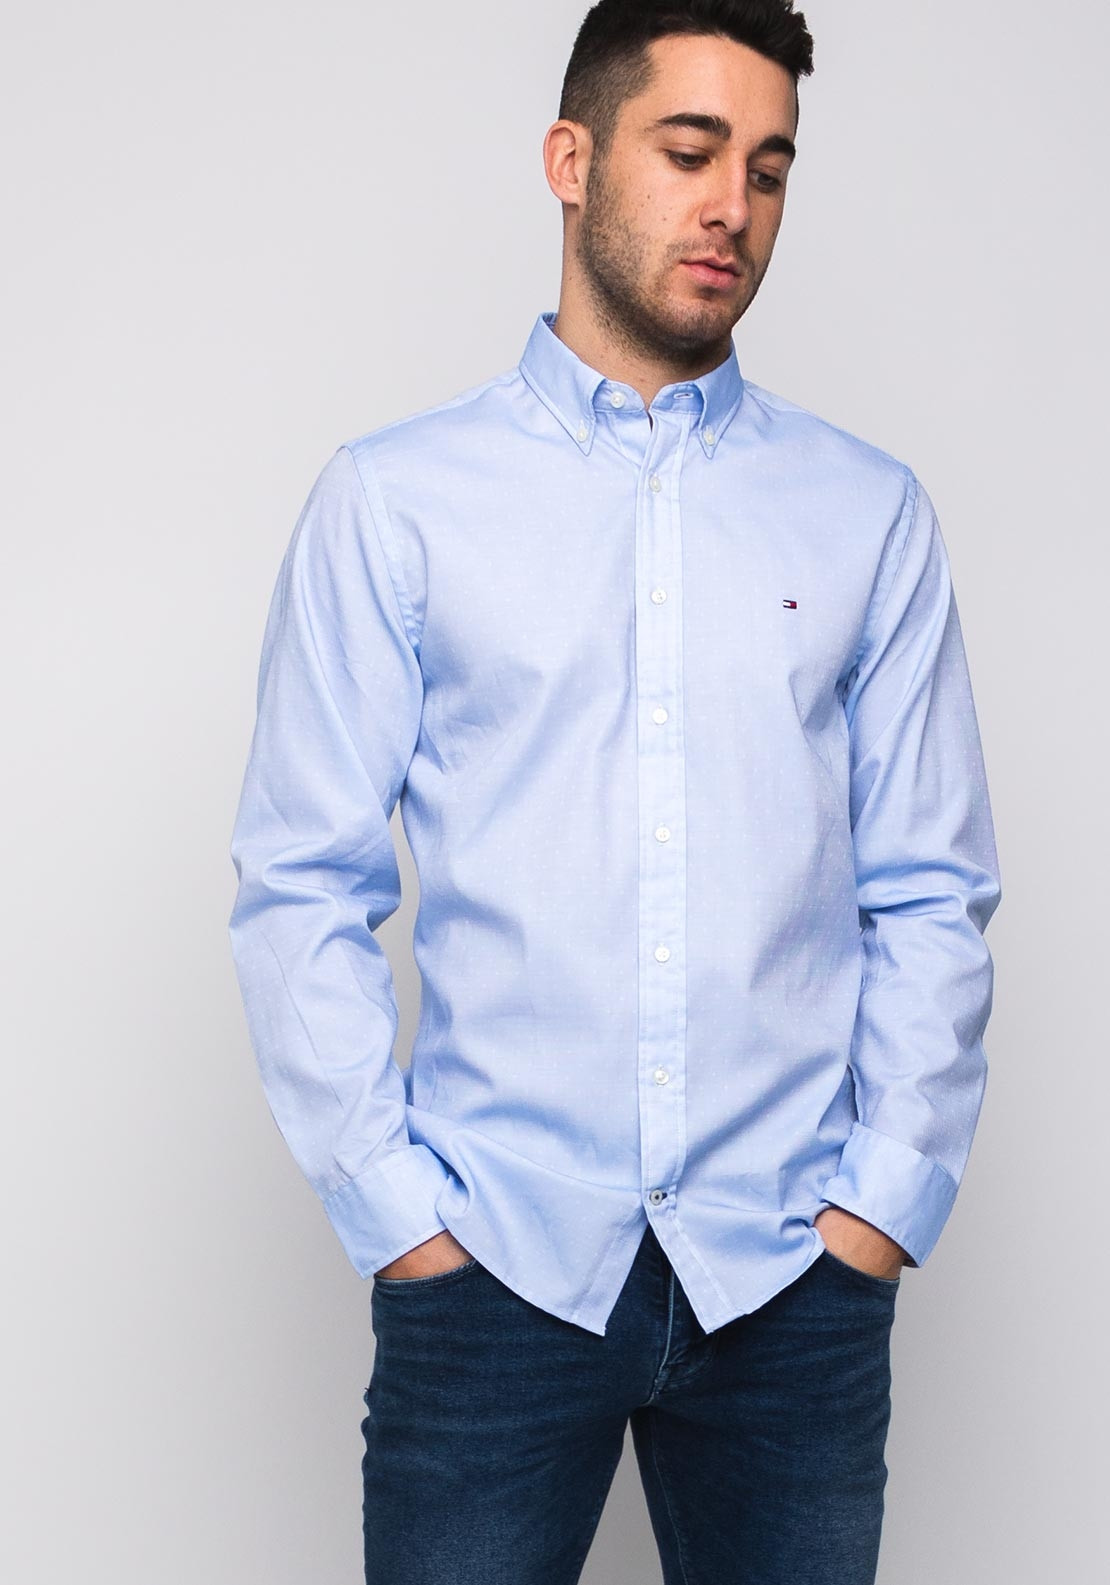 9801e64d Tommy Hilfiger Two Tone Dobby Shirt, Blue. Be the first to review this  product